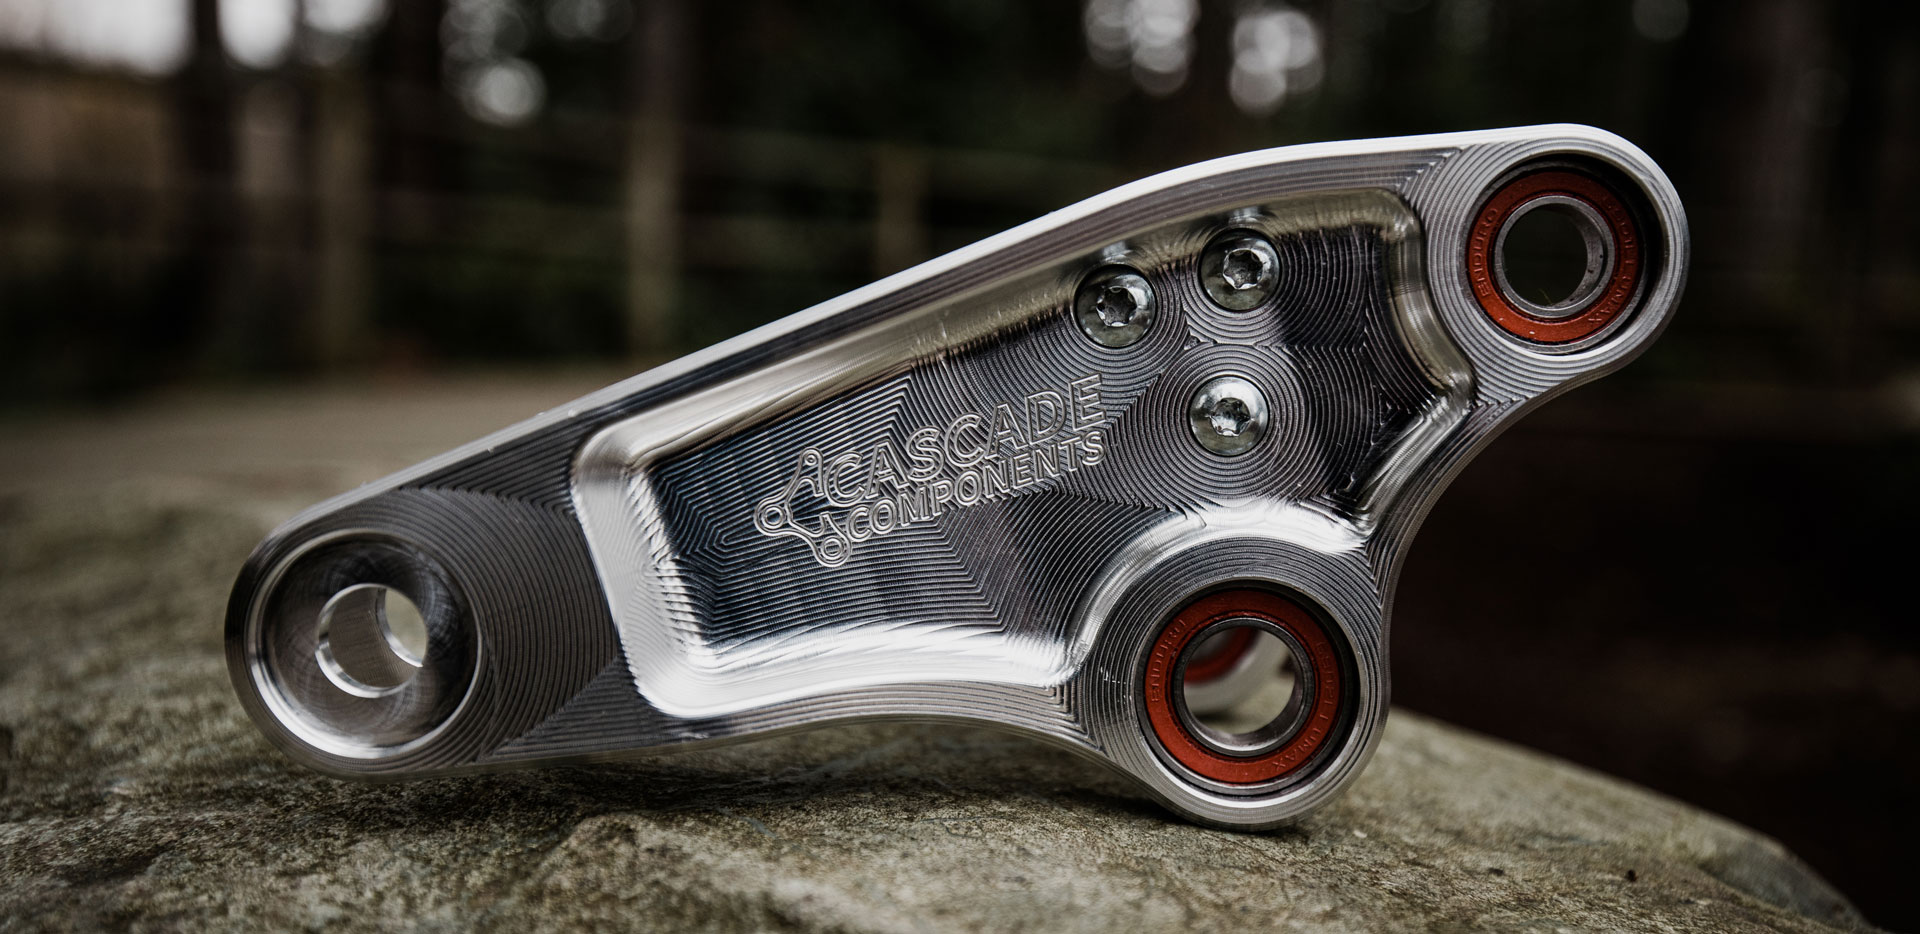 Cascade Components Norco Sight Linkage Review